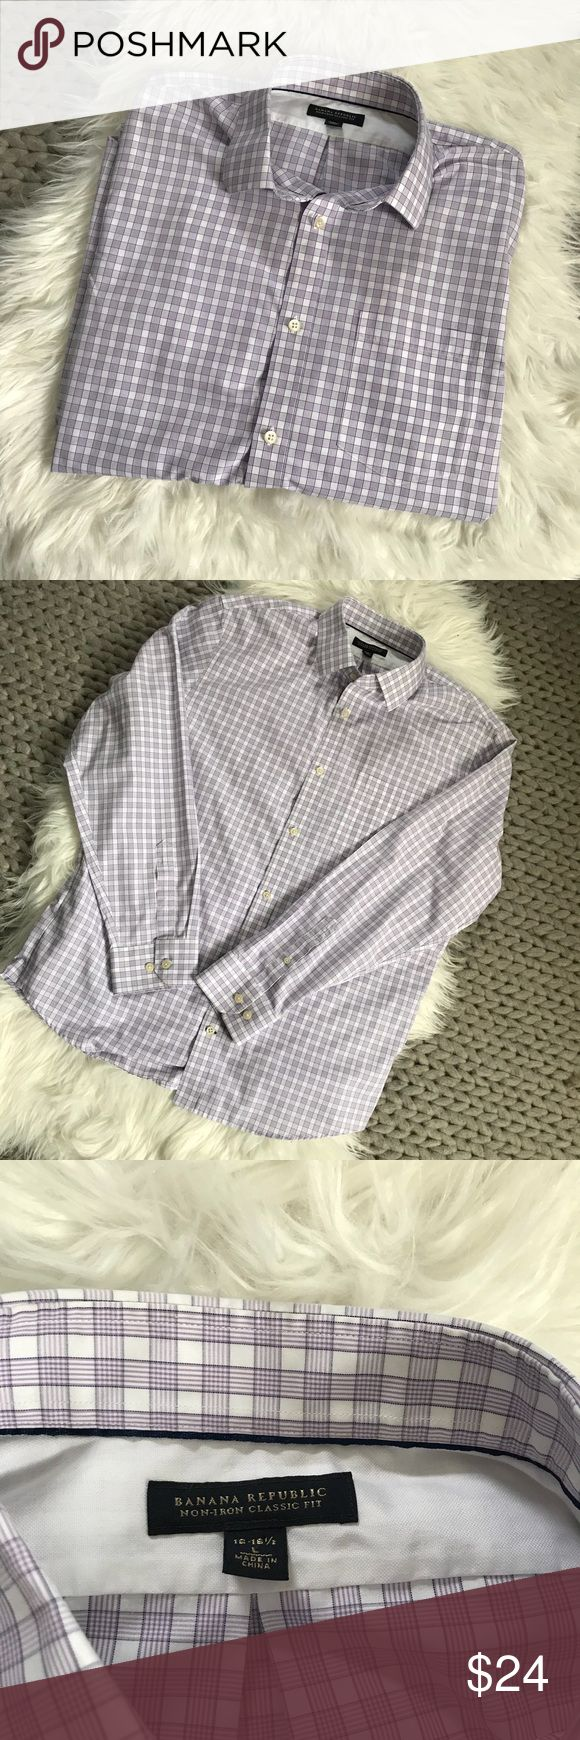 """{ Banana Republic } Lavender Plaid Non Iron Shirt { Banana Republic } Lavender Plaid Non Iron Shirt. 100% Cotton. Excellent condition. No stains, rips, holes or tears. Non smoking home.  Pit to Pit :24"""" Length: 28"""" Banana Republic Shirts Dress Shirts"""